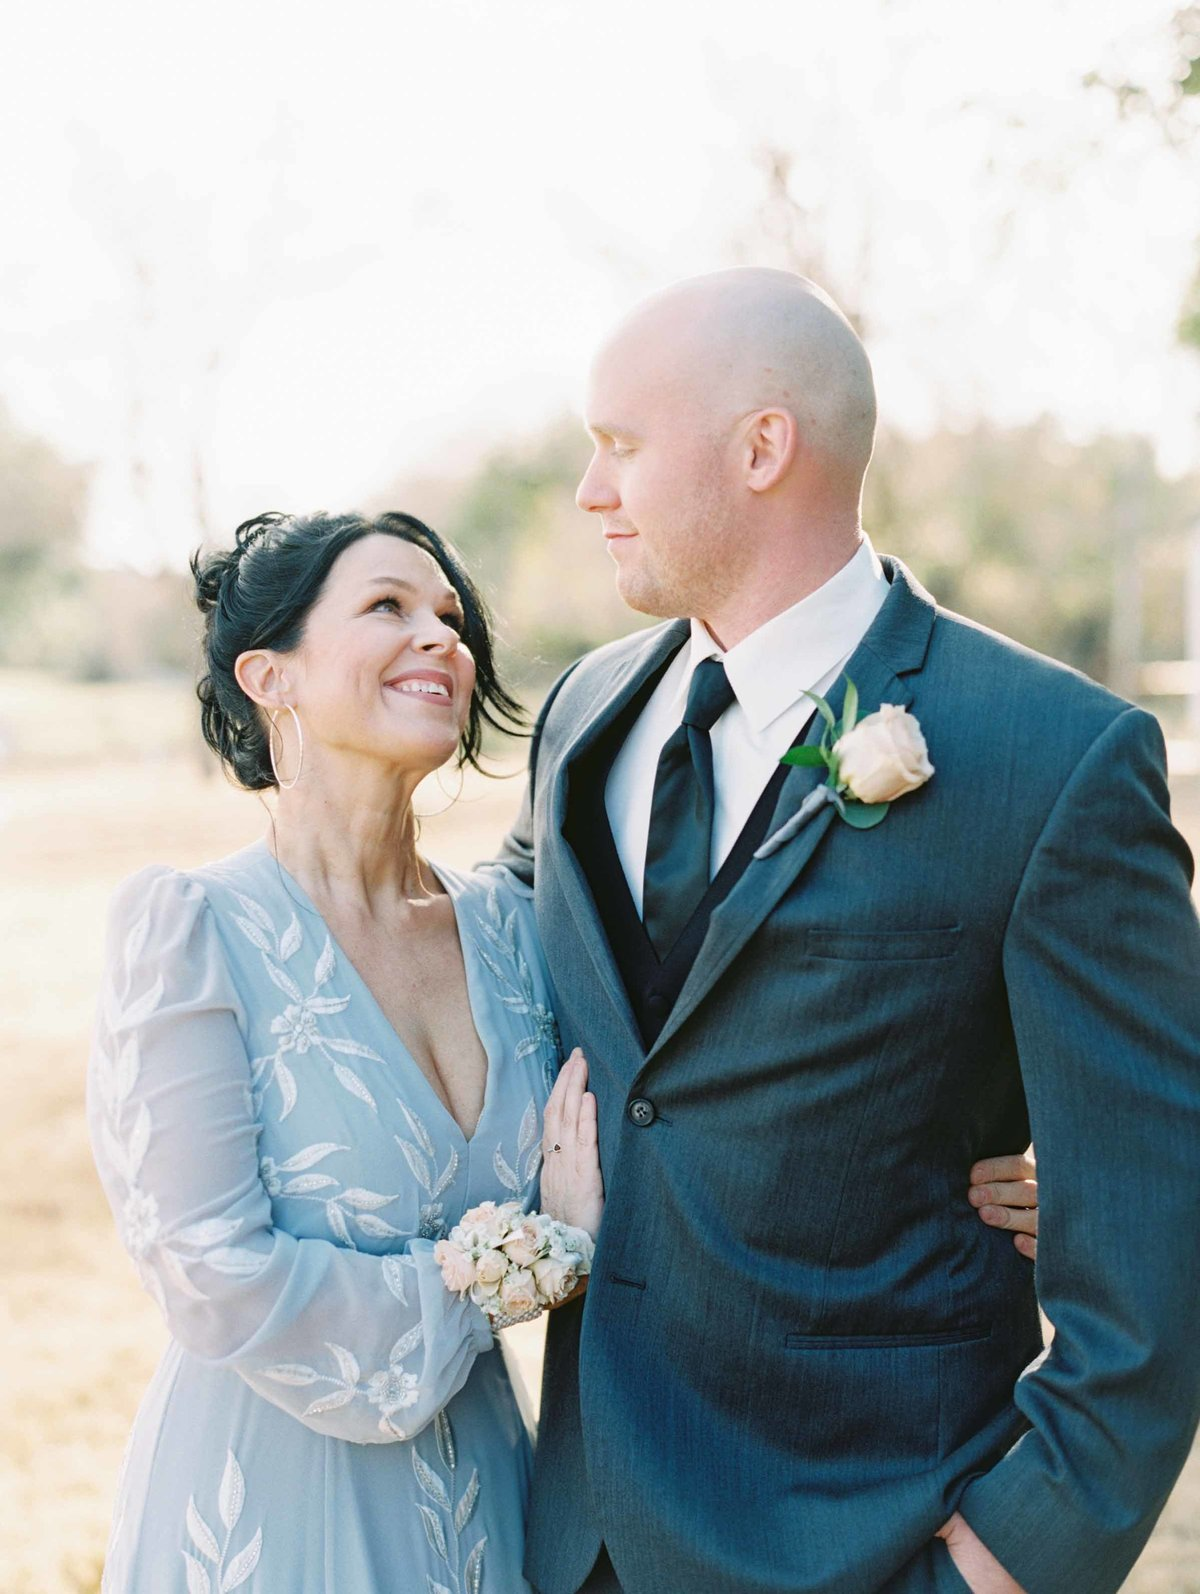 Angel_owens_photography_wedding49